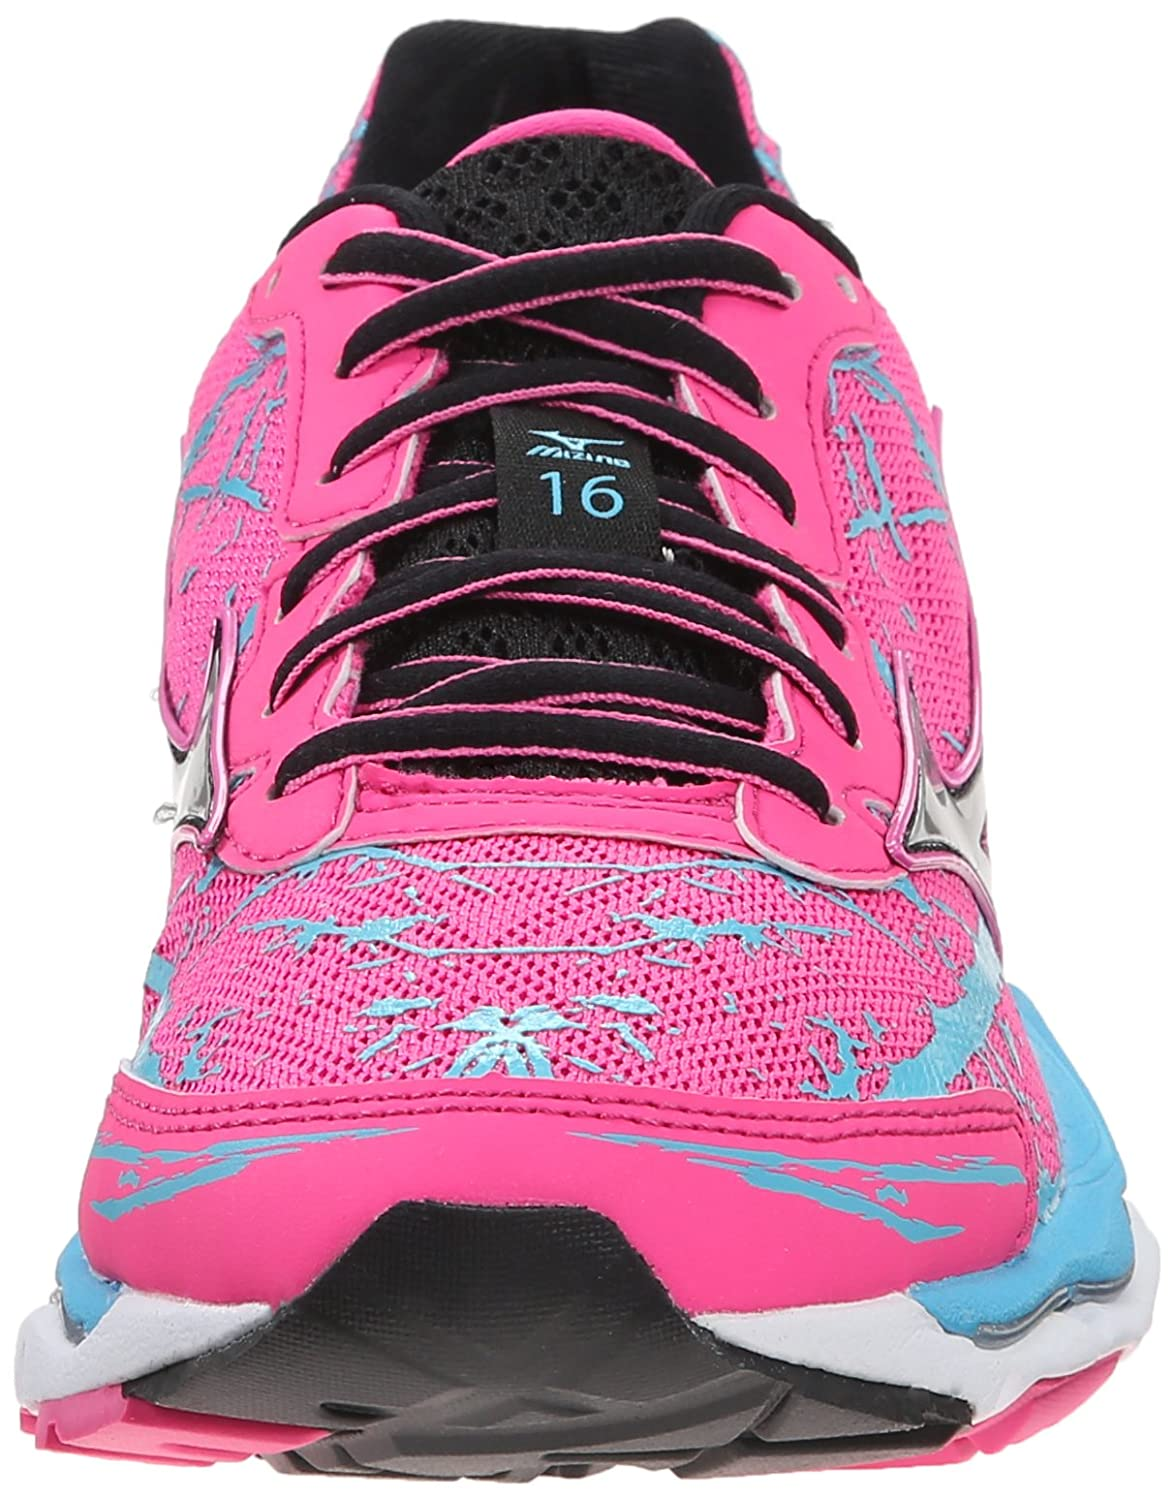 Mizuno Womens Wave Creation 16 Running Shoe Mizuno Women/'s Wave Creation 16 Running Shoe Creation 16 Limited Edition-W